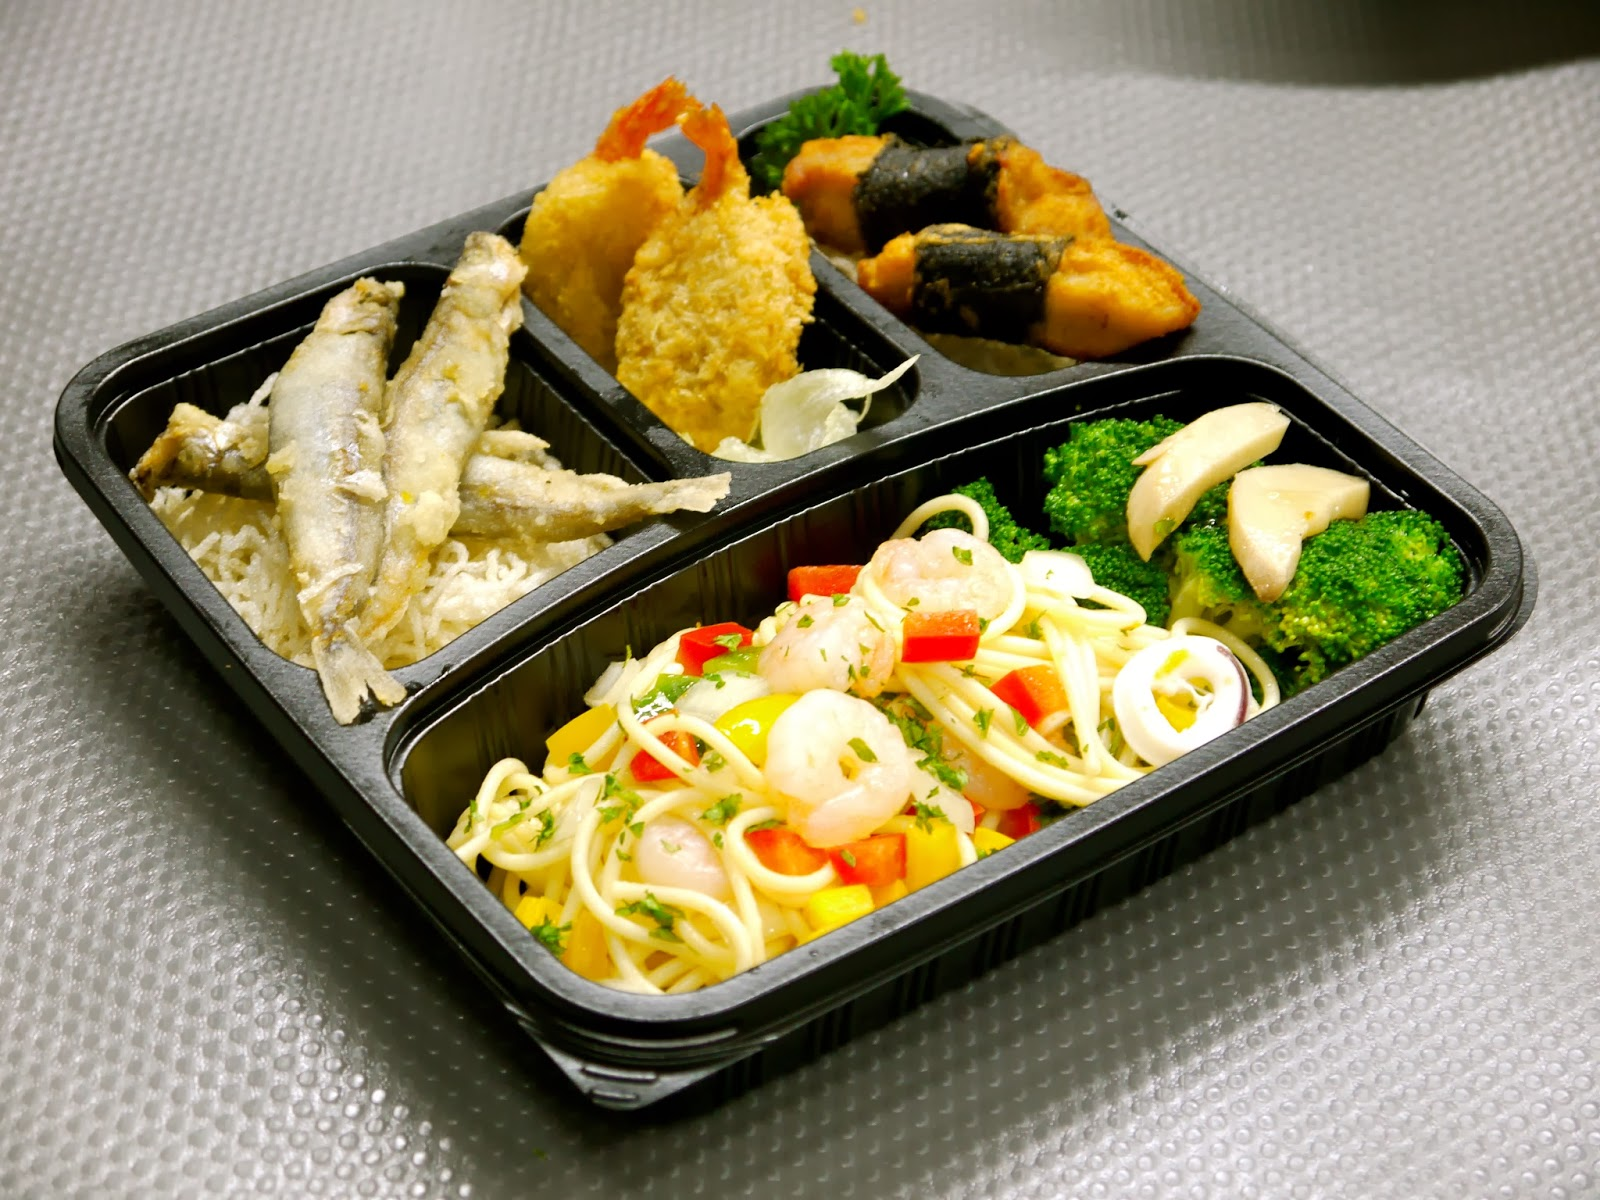 Mei Hao Catering - Japanese bento delivery, corporate catering, singapore catering, buffet catering singapore